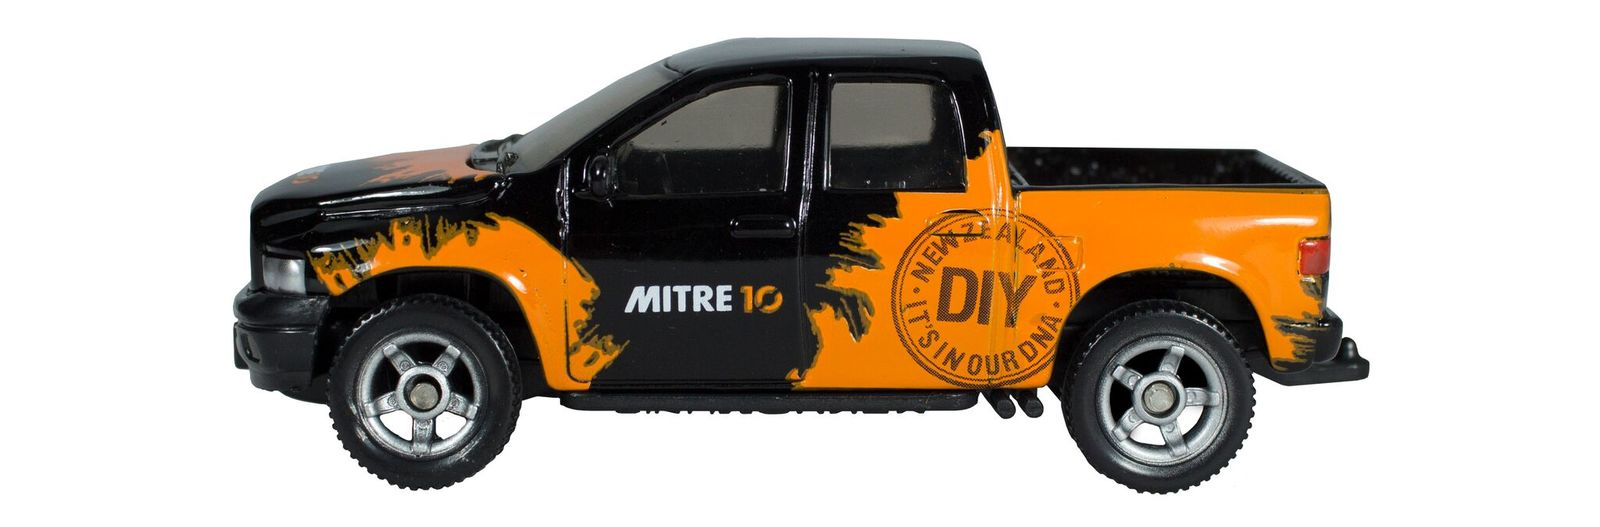 SIKU: Mitre 10 Delivery Ute image